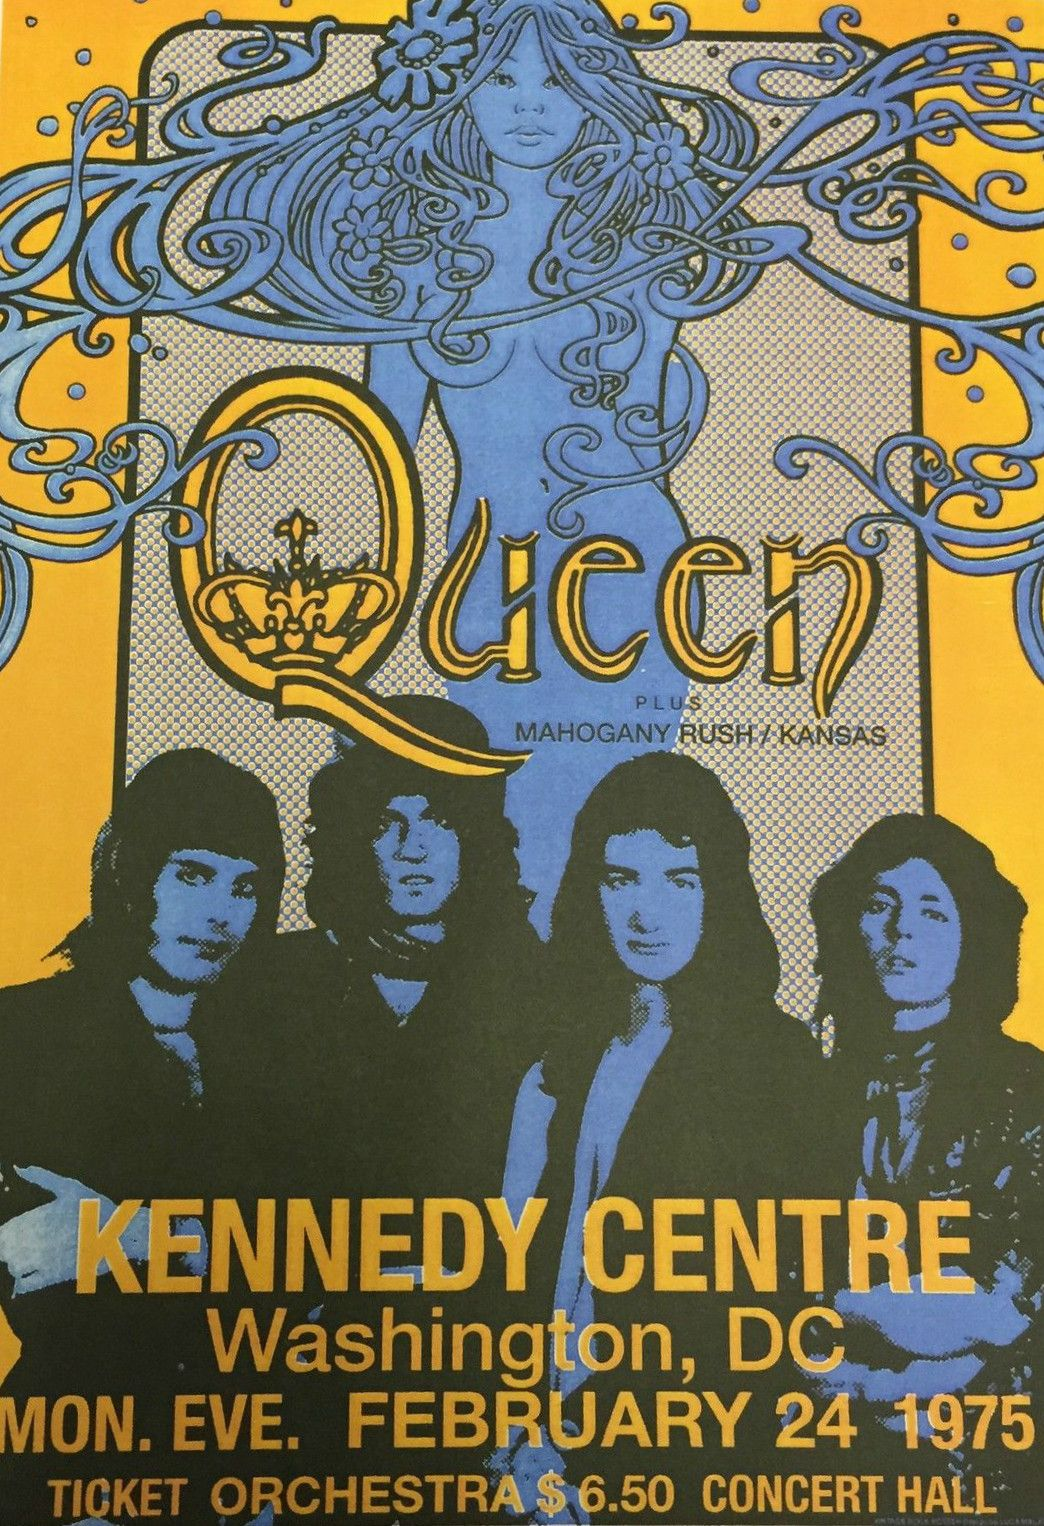 Pin By Andrew Farr On Classic Rock Concert Posters In 2019